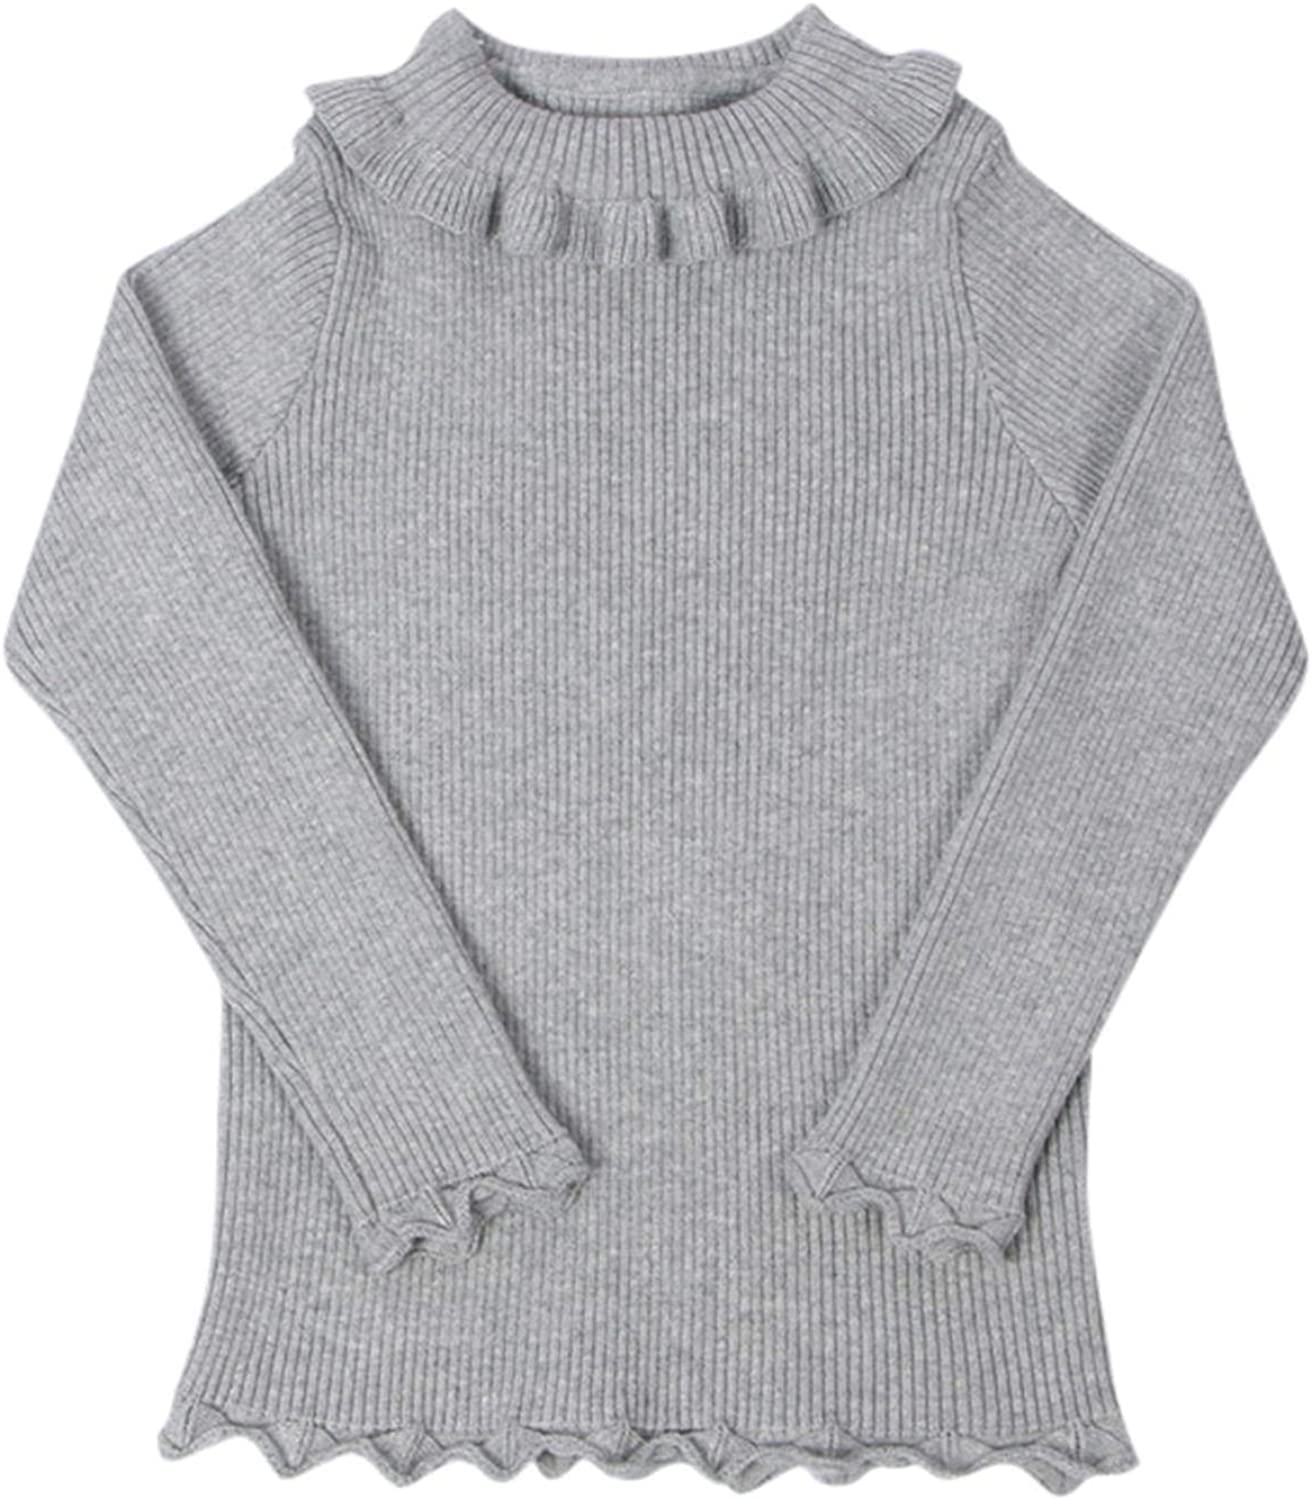 Max 63% OFF Lingery Kid Outfit Toddler Kids Knit Swe Turtleneck Baby Ruffles Large special price